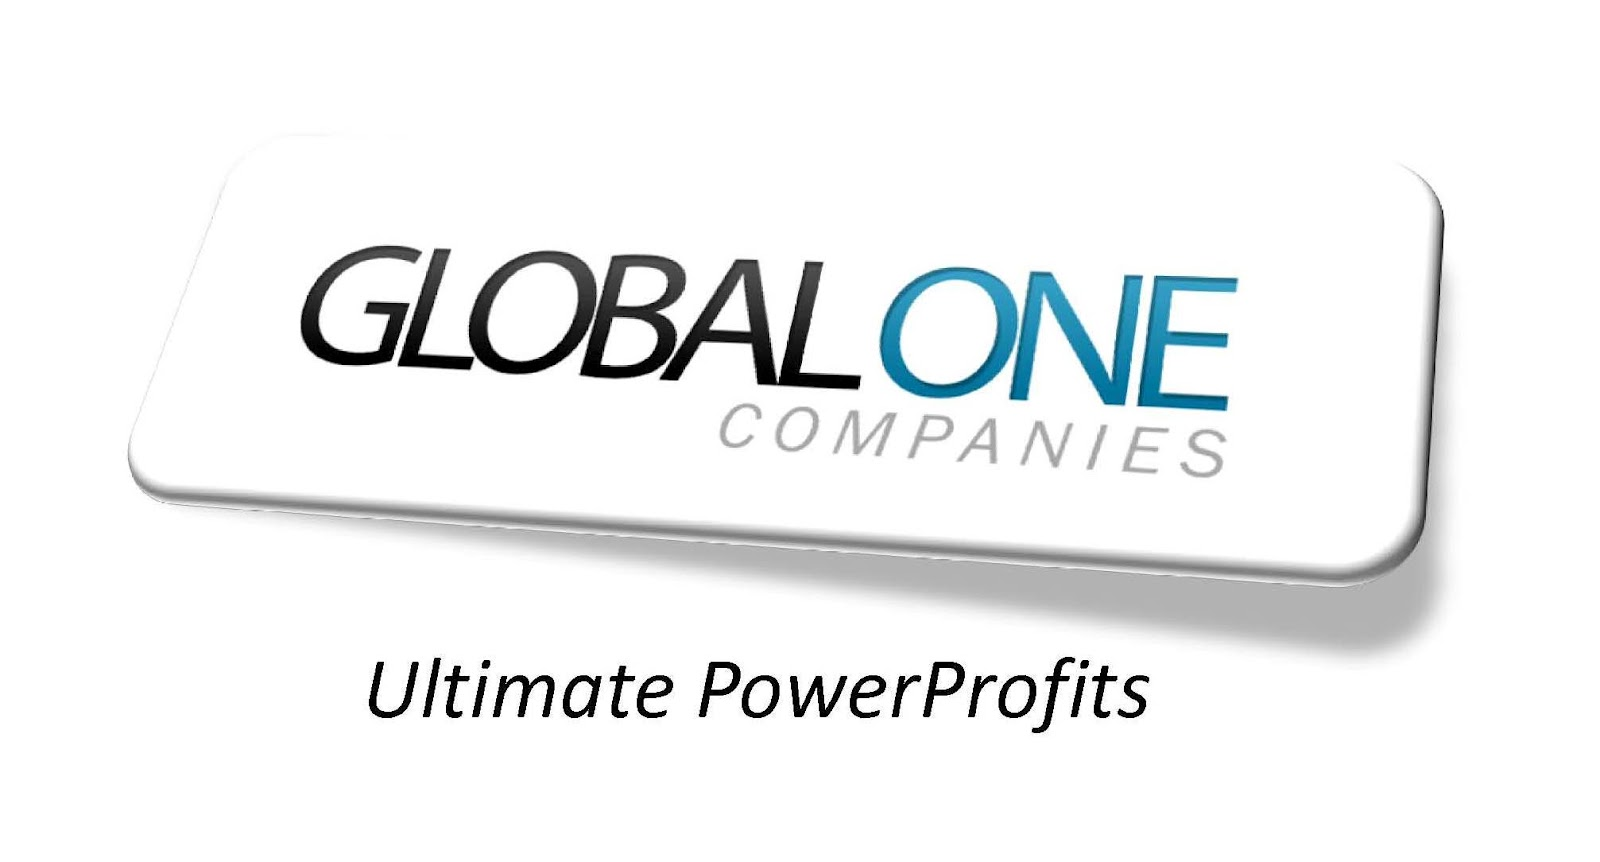 Ultimatepowerprofits Globalone Spinfinity Global One